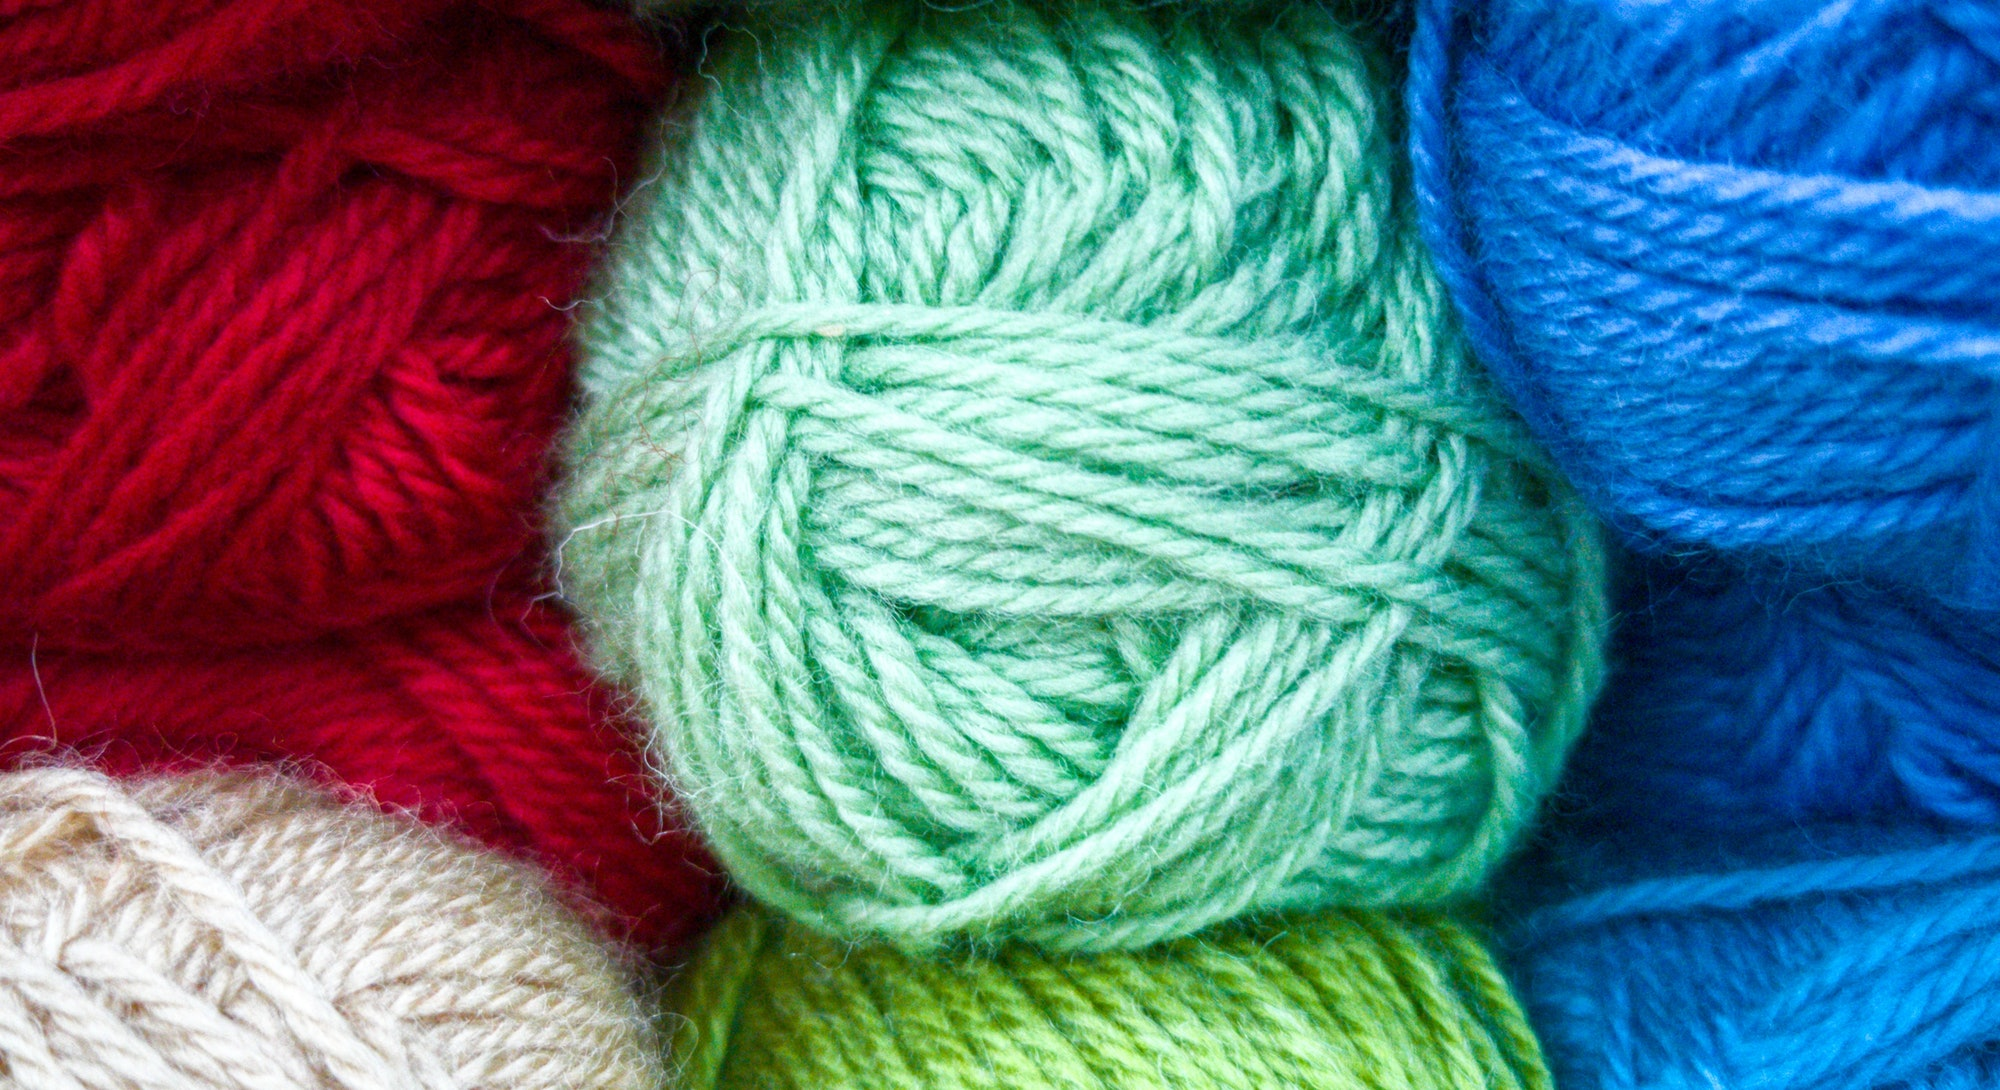 A close up of balls of yarn. This article details pandemic hobbies to do during the winter.